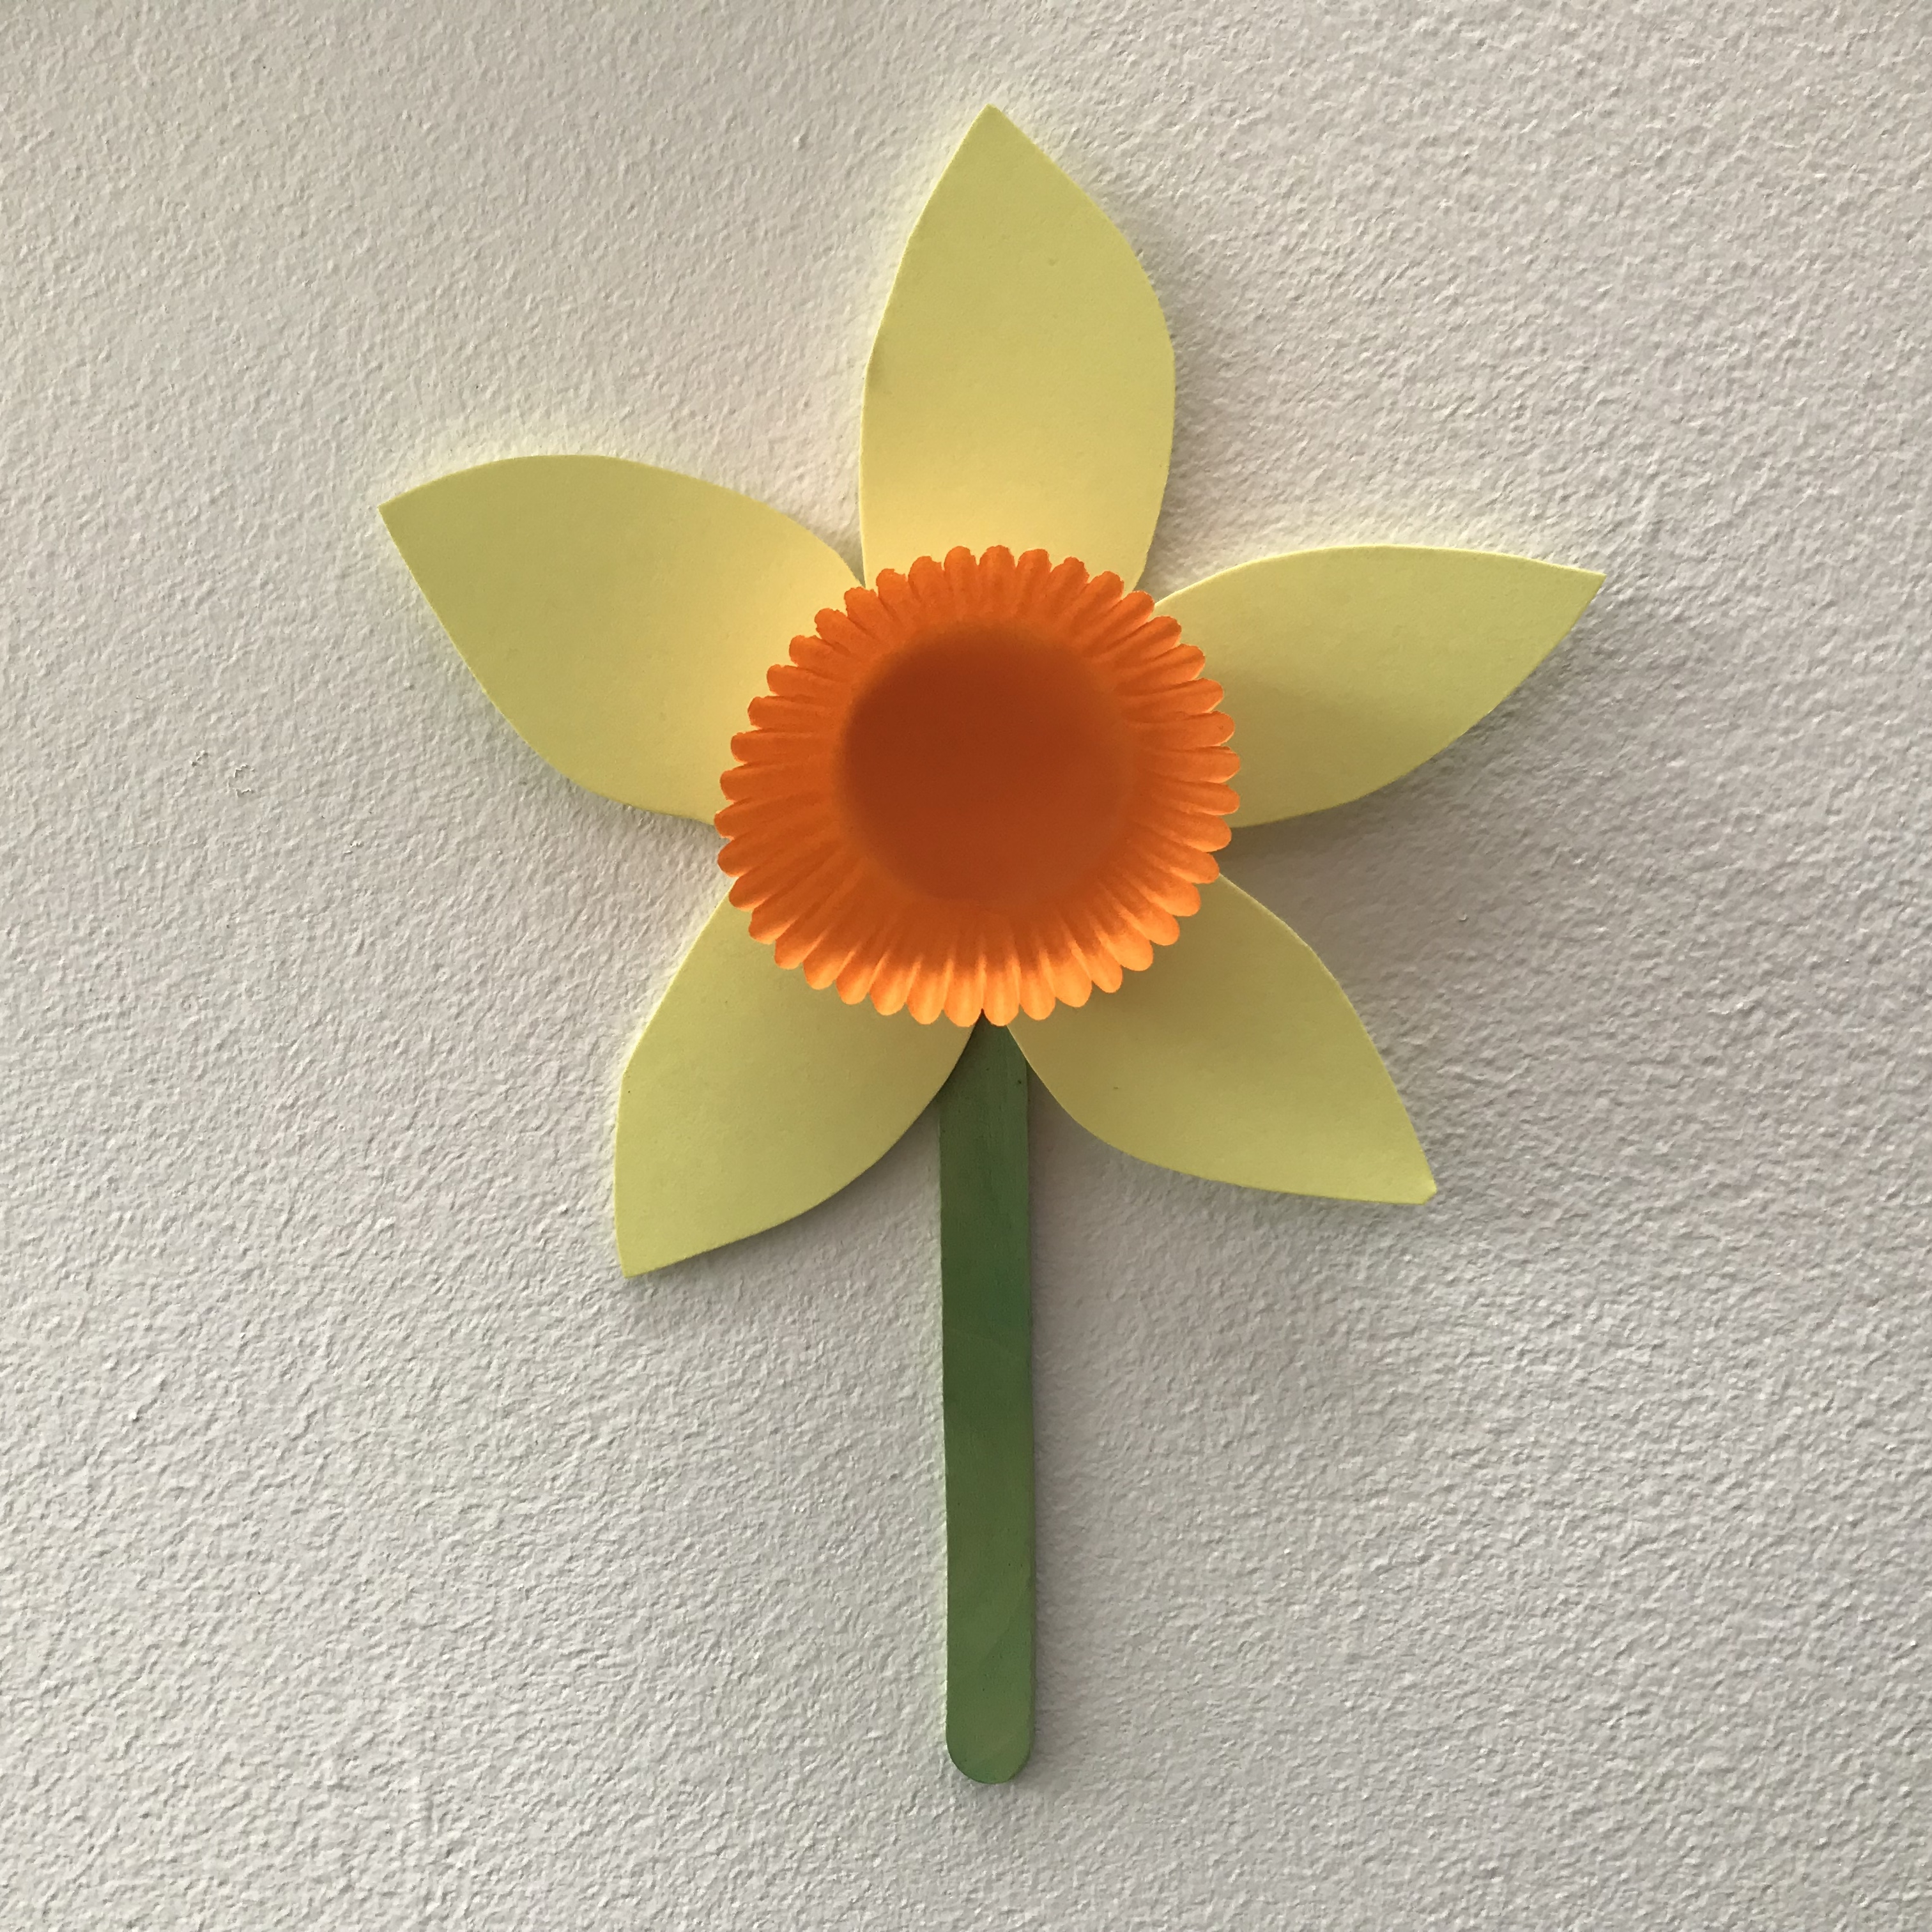 Origami - Daffodil, Narcissus (Paper Flower) - YouTube | 3024x3024